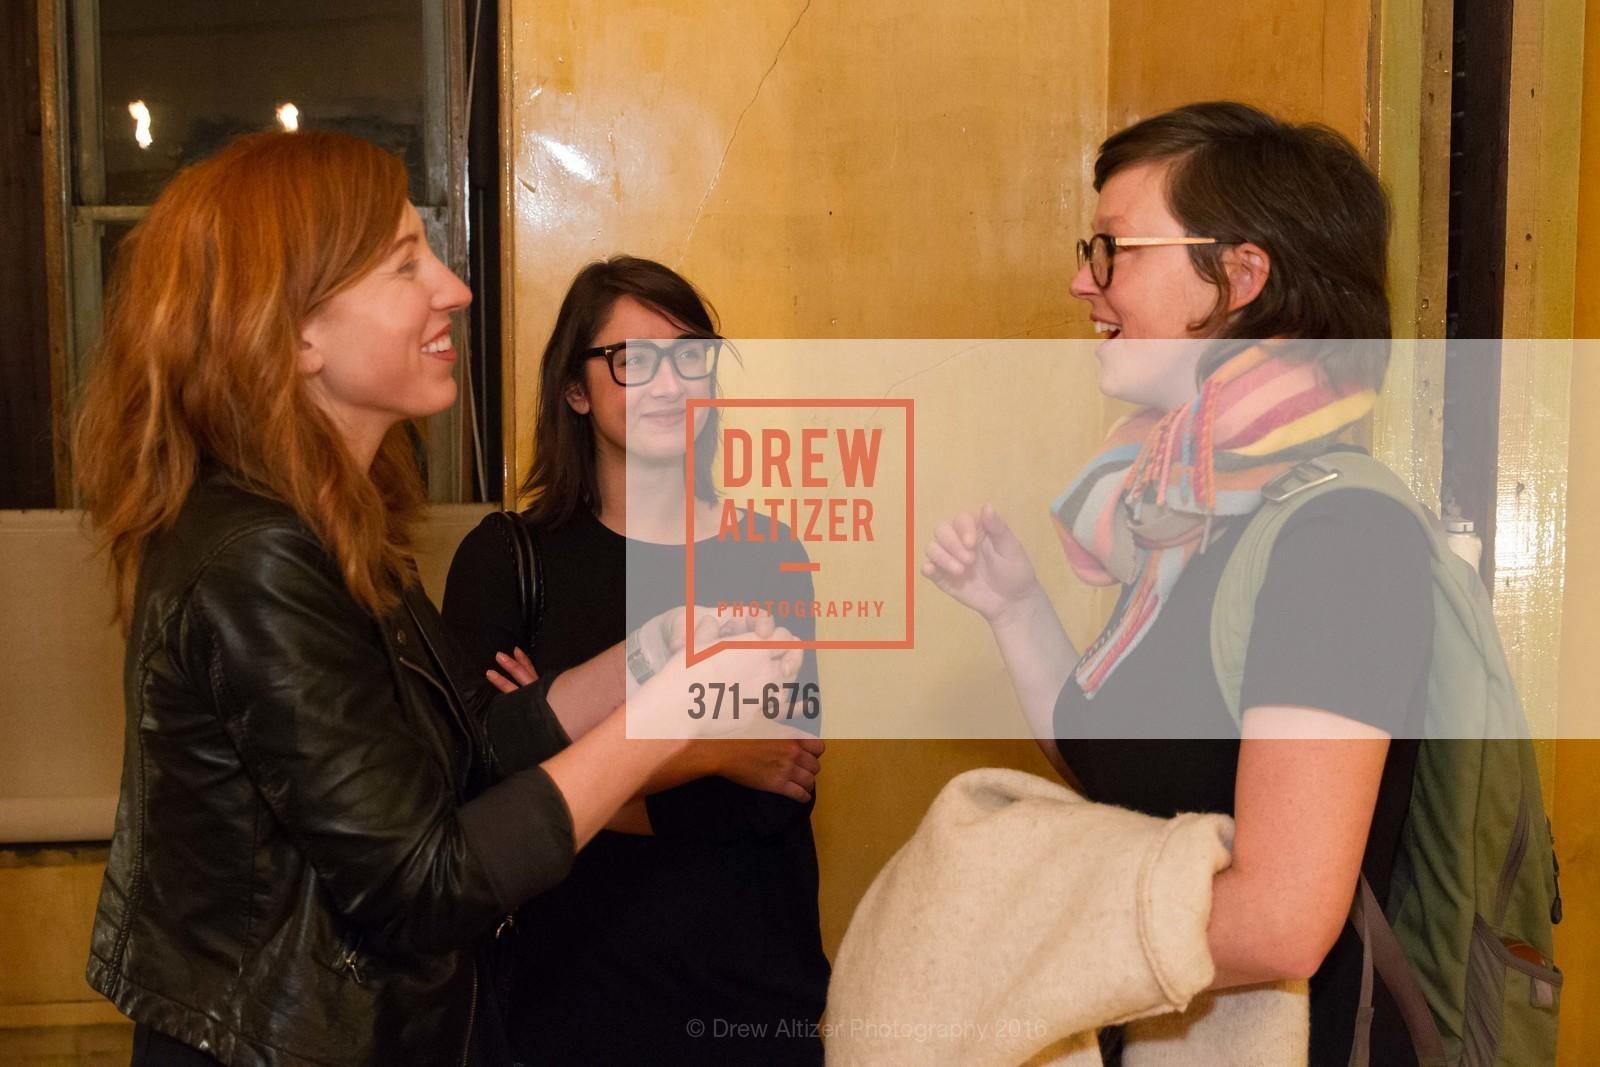 Jessica Roux, Lila Grothe, 500 Capp Street Preview Reception, 500 Capp Street Foundation. 500 Capp Street, January 7th, 2016,Drew Altizer, Drew Altizer Photography, full-service agency, private events, San Francisco photographer, photographer california